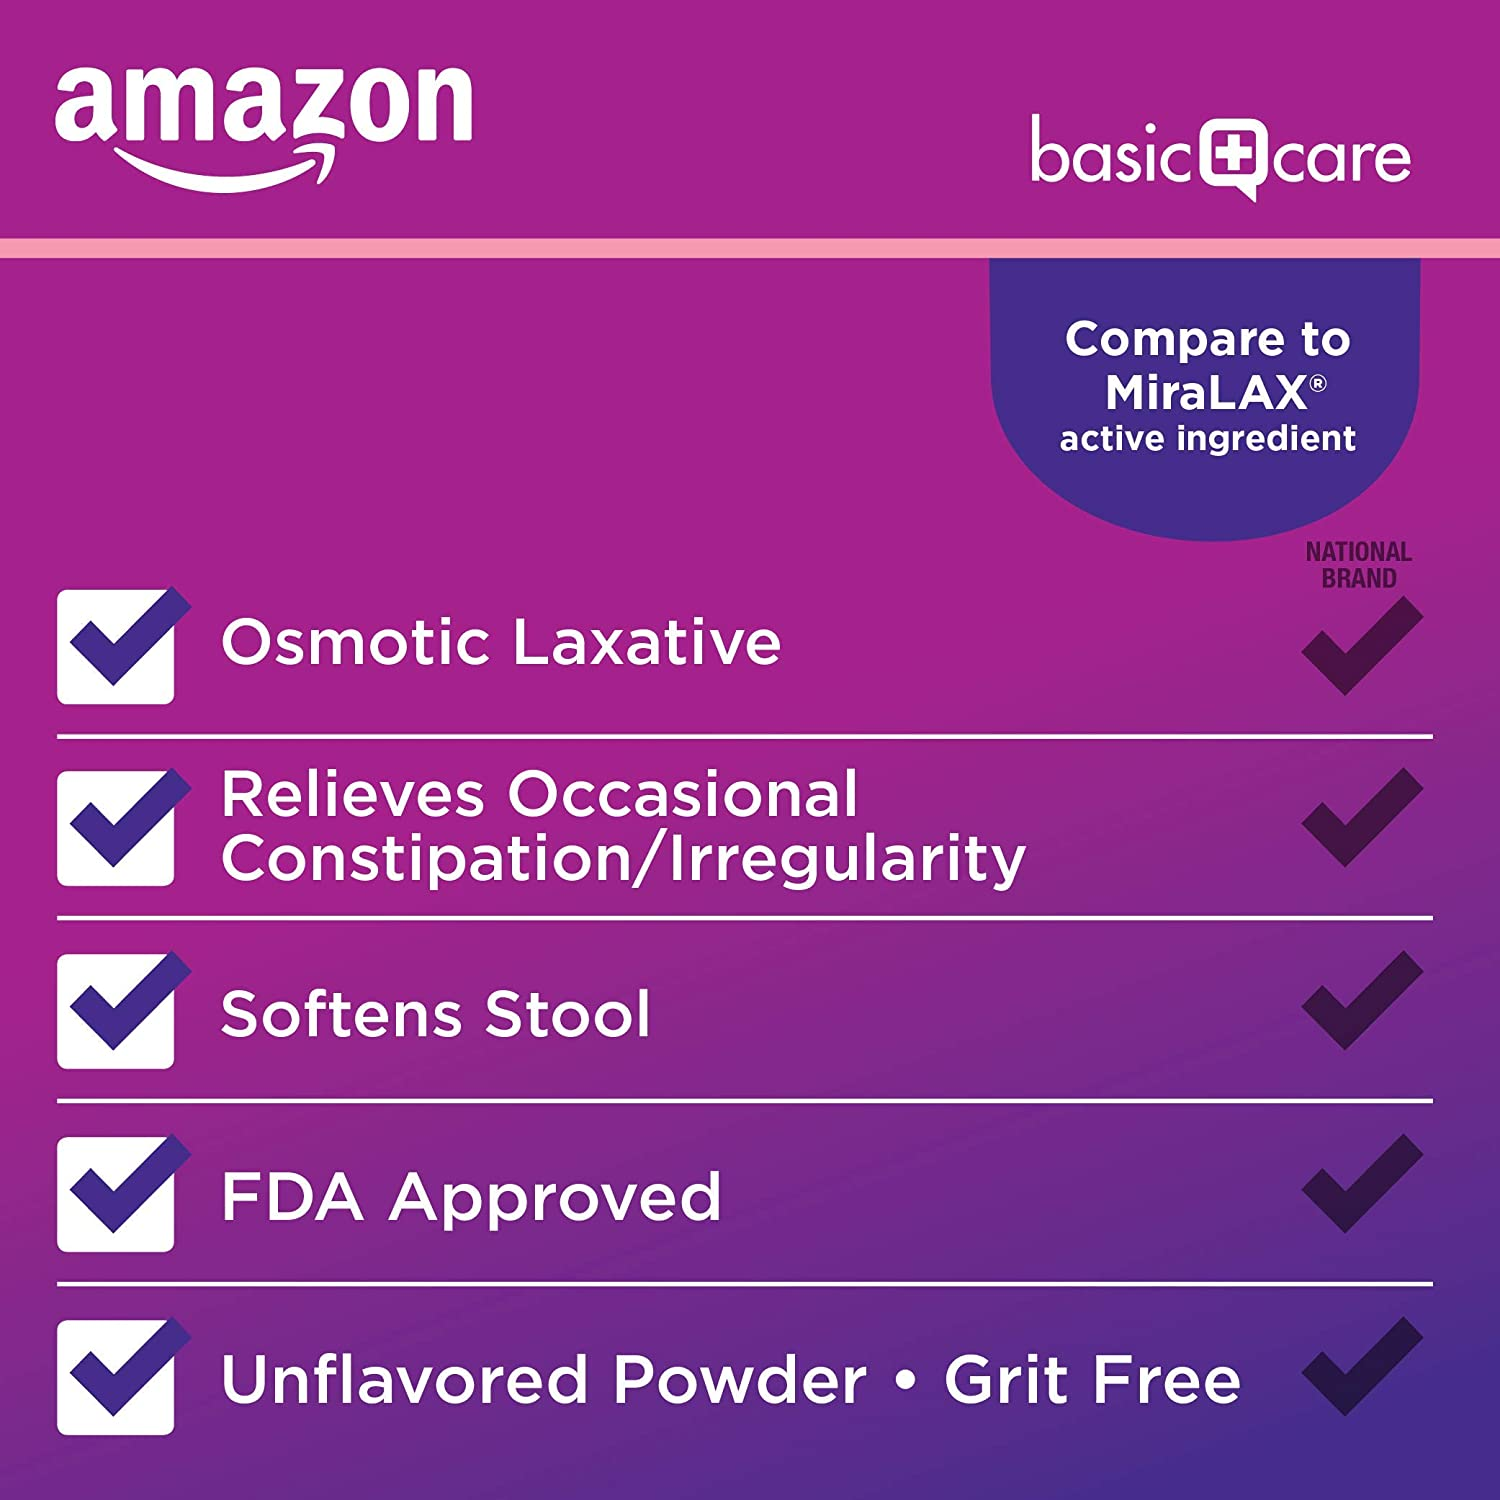 Basic Care ClearLax, Polyethylene Glycol 3350 Powder for Solution, Osmotic Laxative, 26.9 Ounce: Health & Personal Care